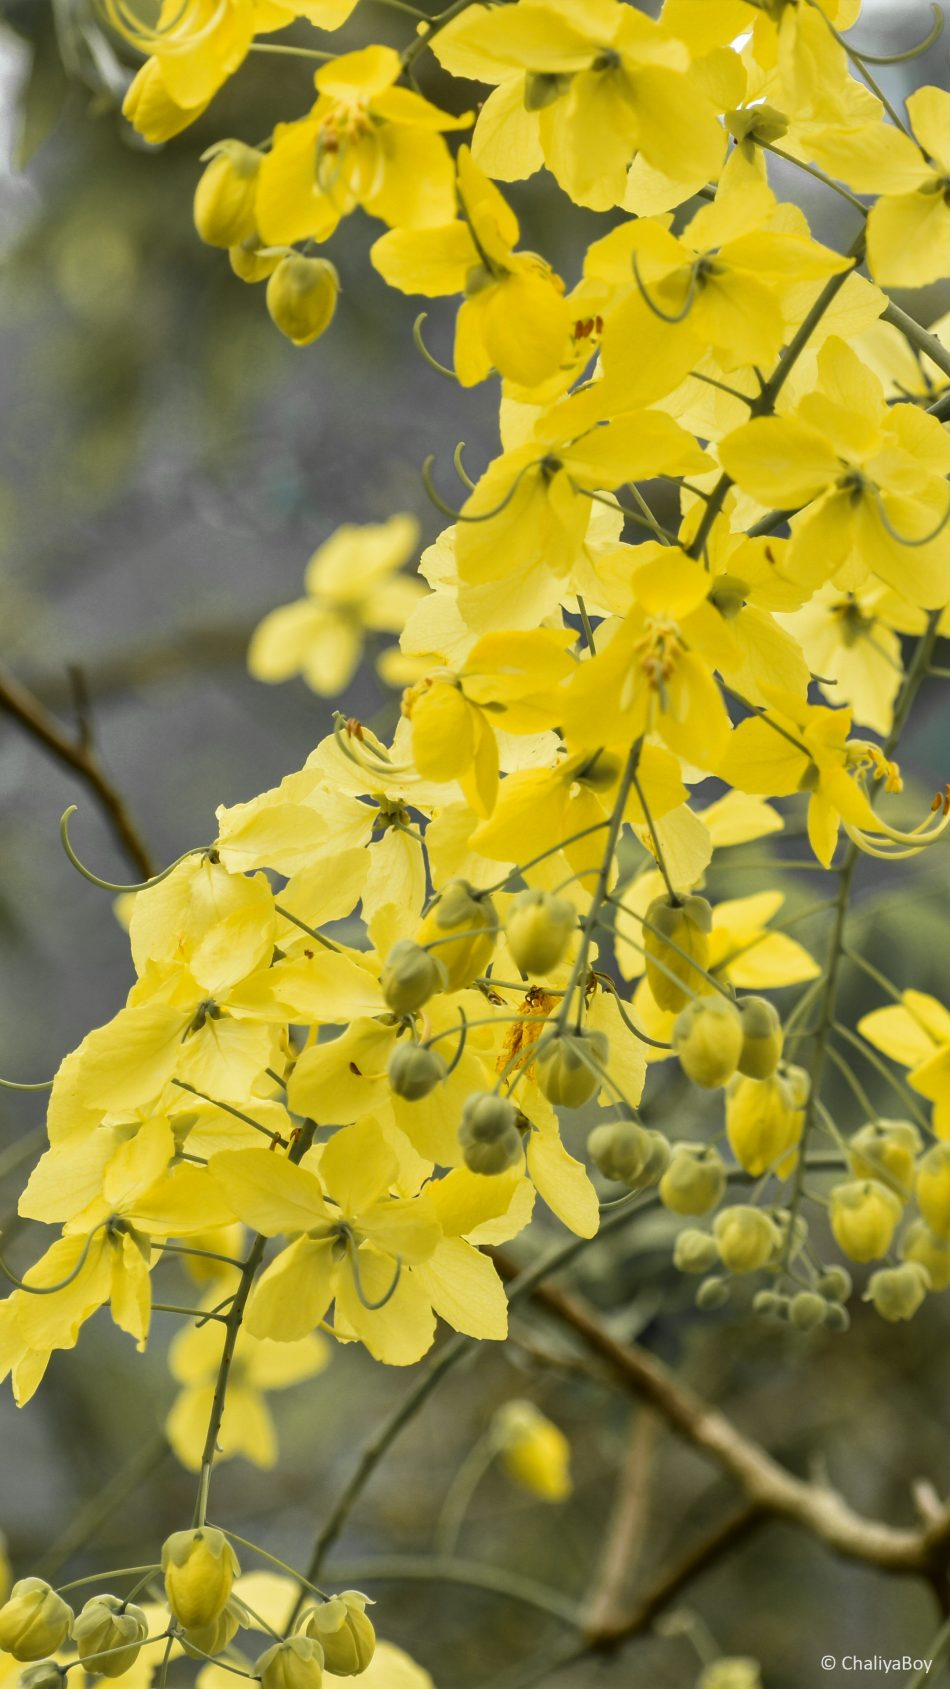 Yellow Golden Shower Flowers 4k Ultra Hd Mobile Wallpaper